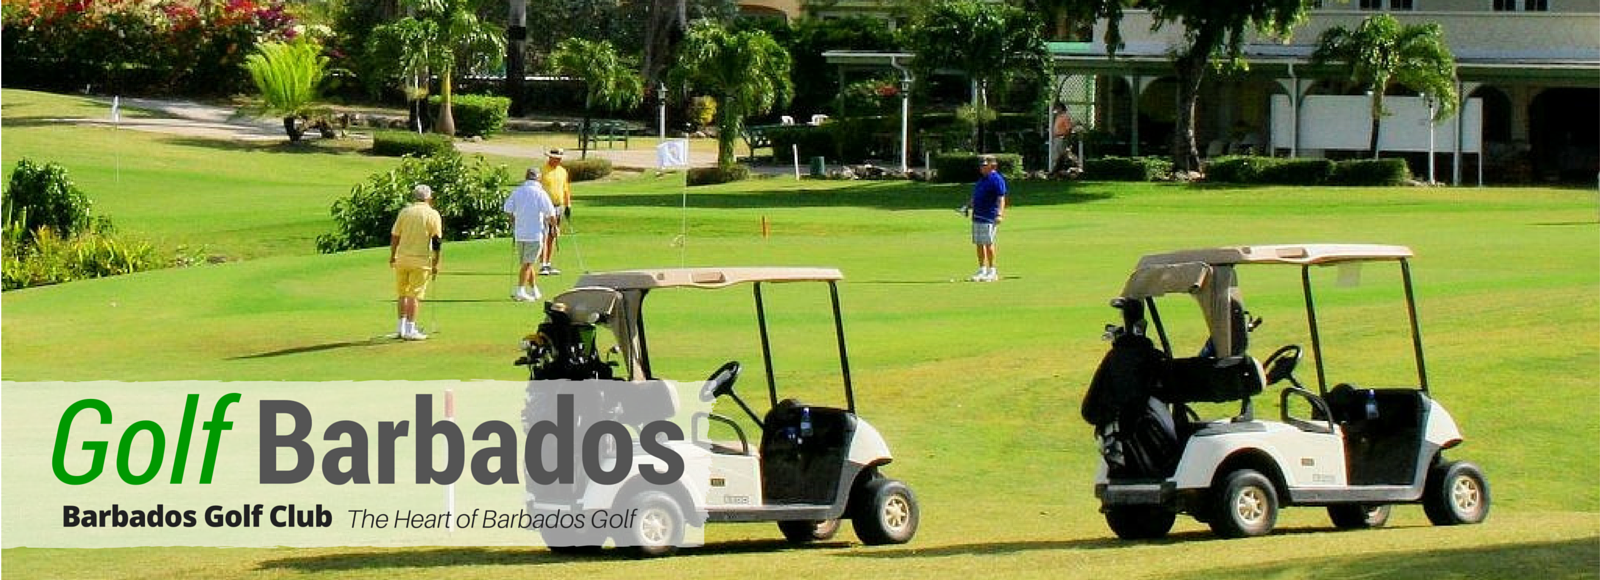 Golf Barbados with Premier Attractions: The Heart and Soul of Barbados Golf